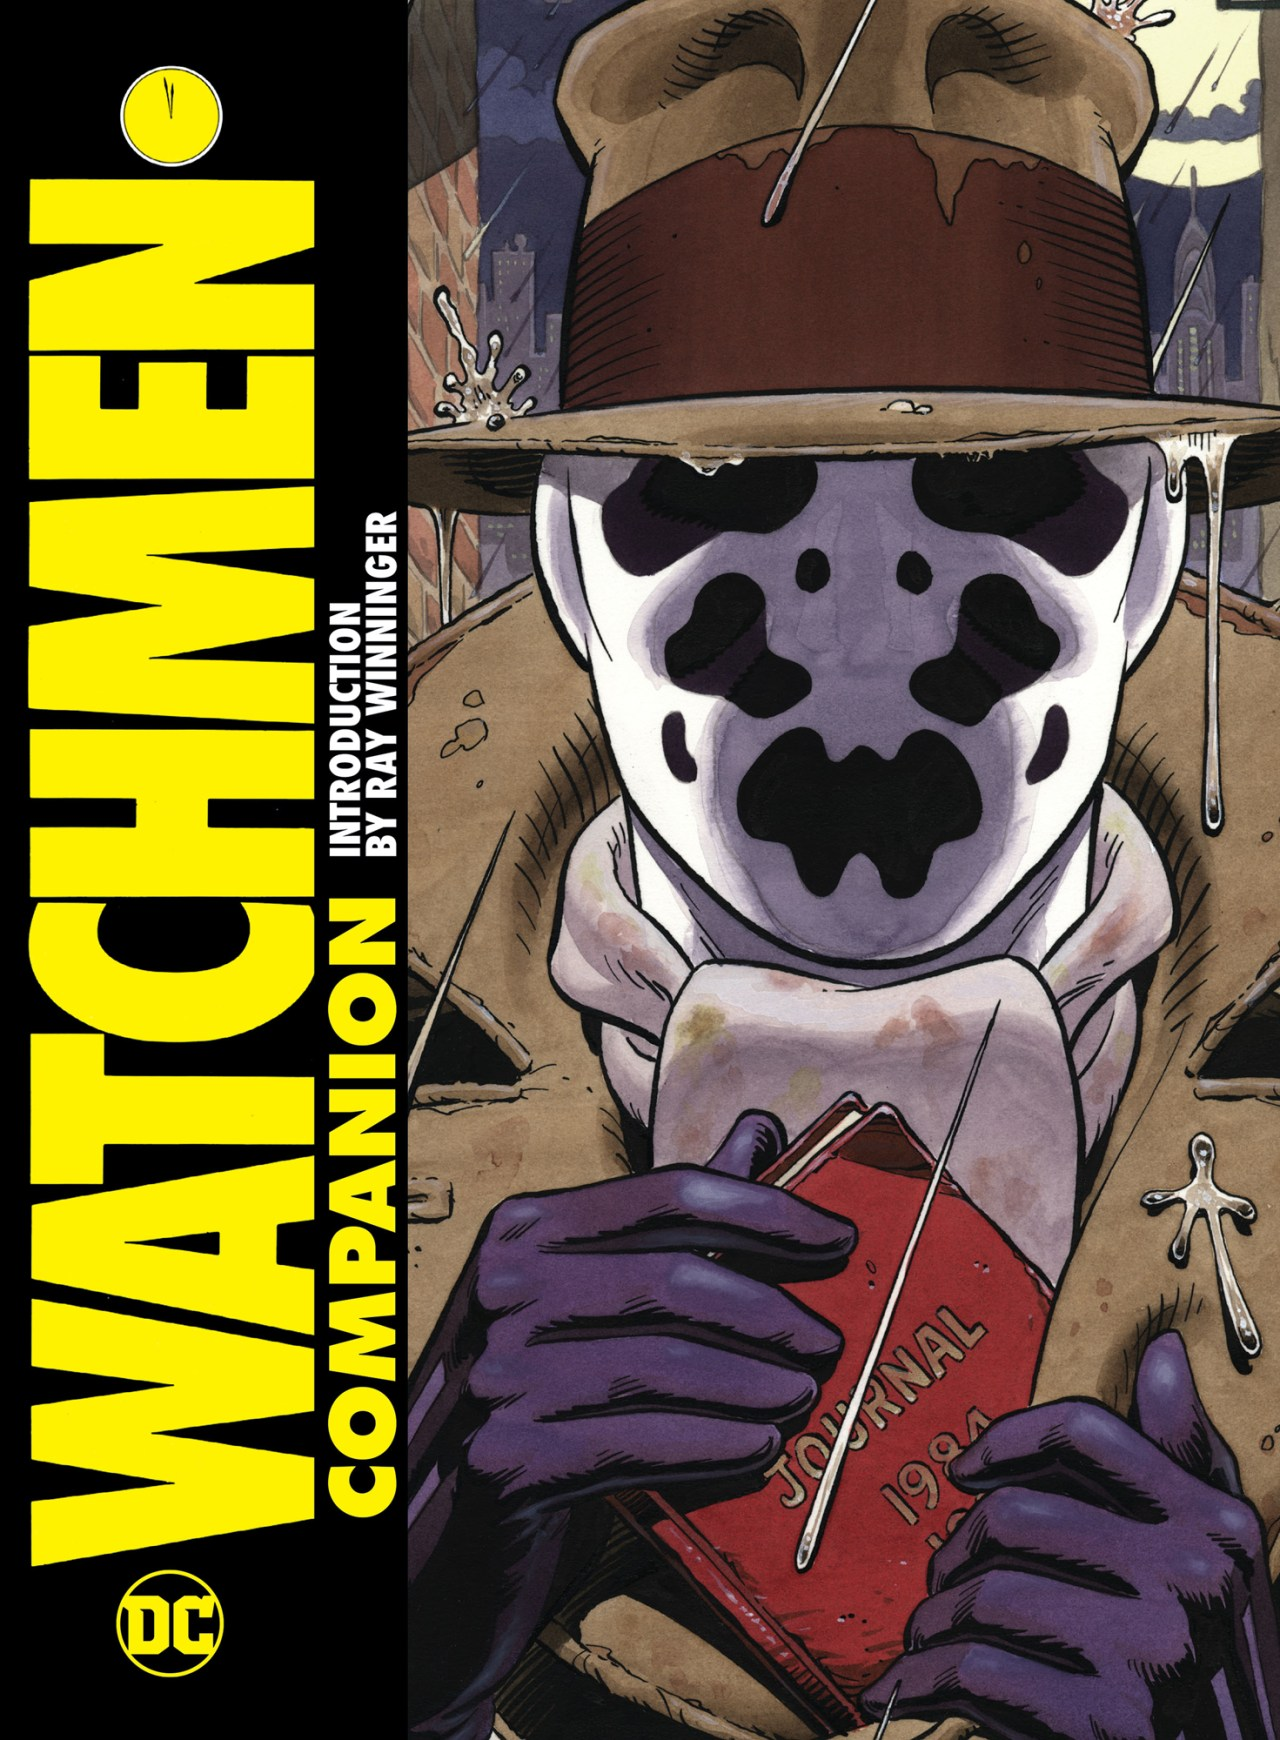 Cover to DC's Watchmen Companion